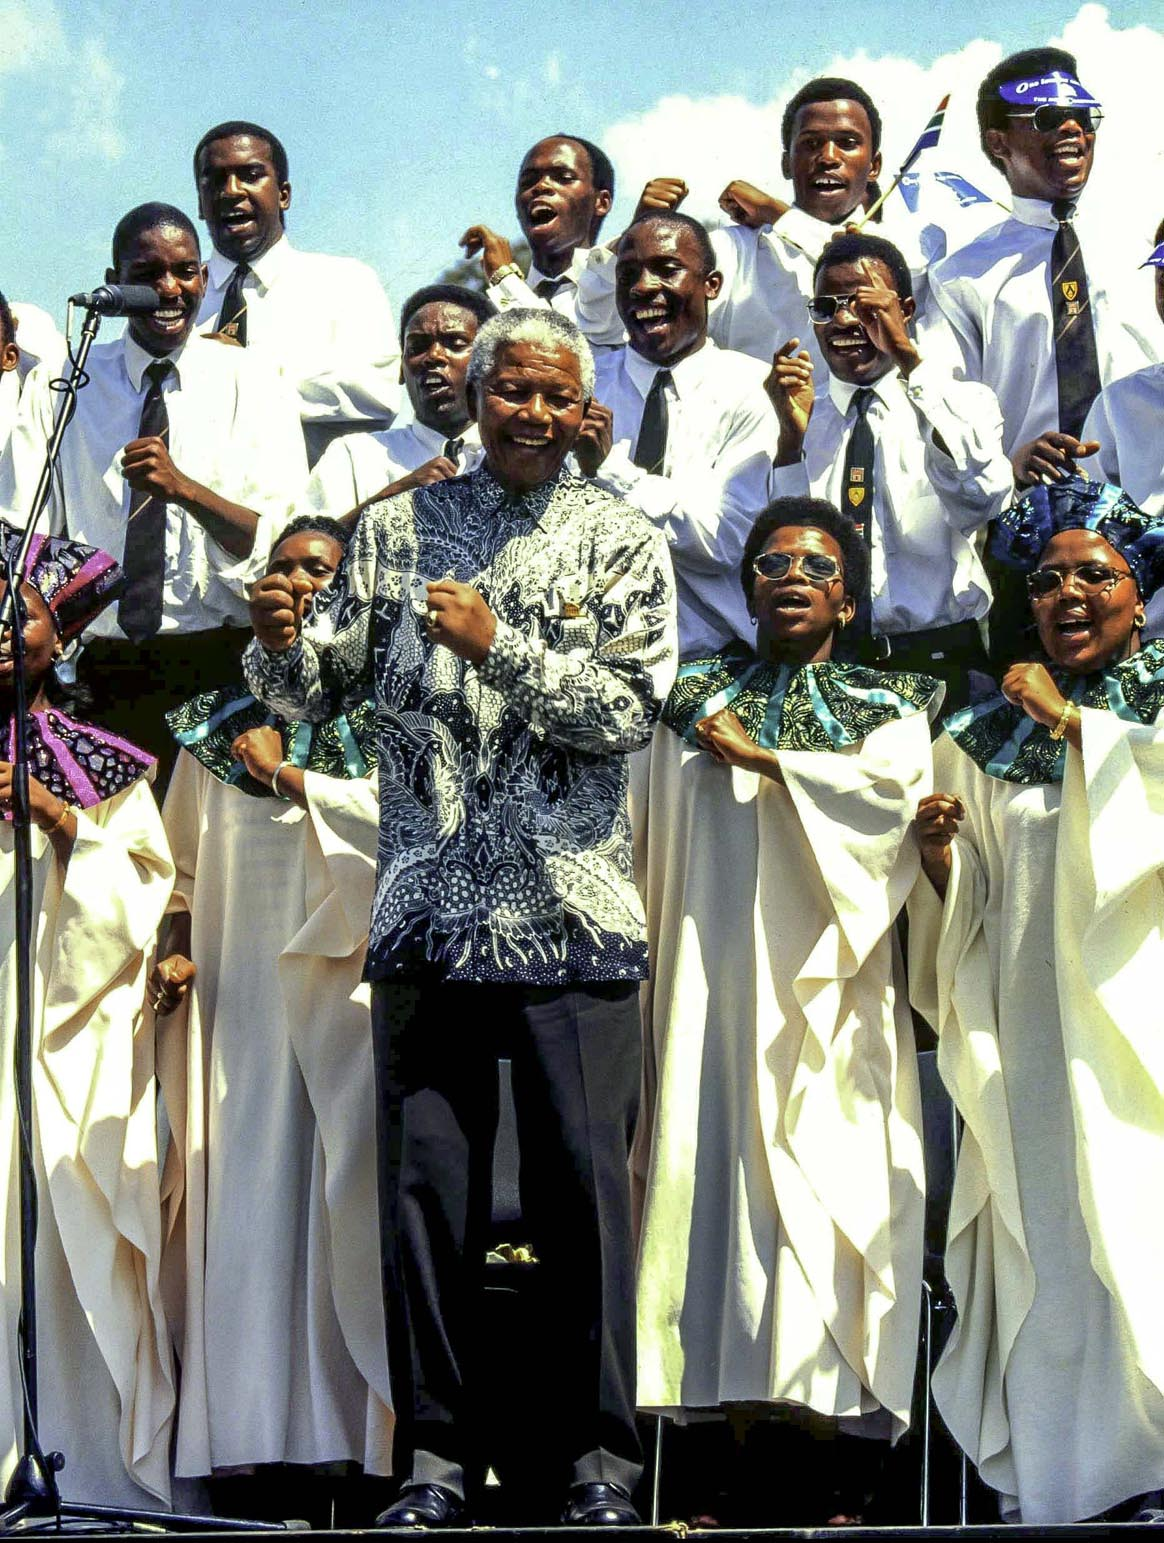 971115SH20:SAFRICA:PERSONALITY:POLITICS:GOVERNMENT:1997 - President Mandela and the choir at the singing of the constitution ceremony, doing the 'Madiba Jive' (Photo: Shuan Harris / www.afrikamoves.co.za)